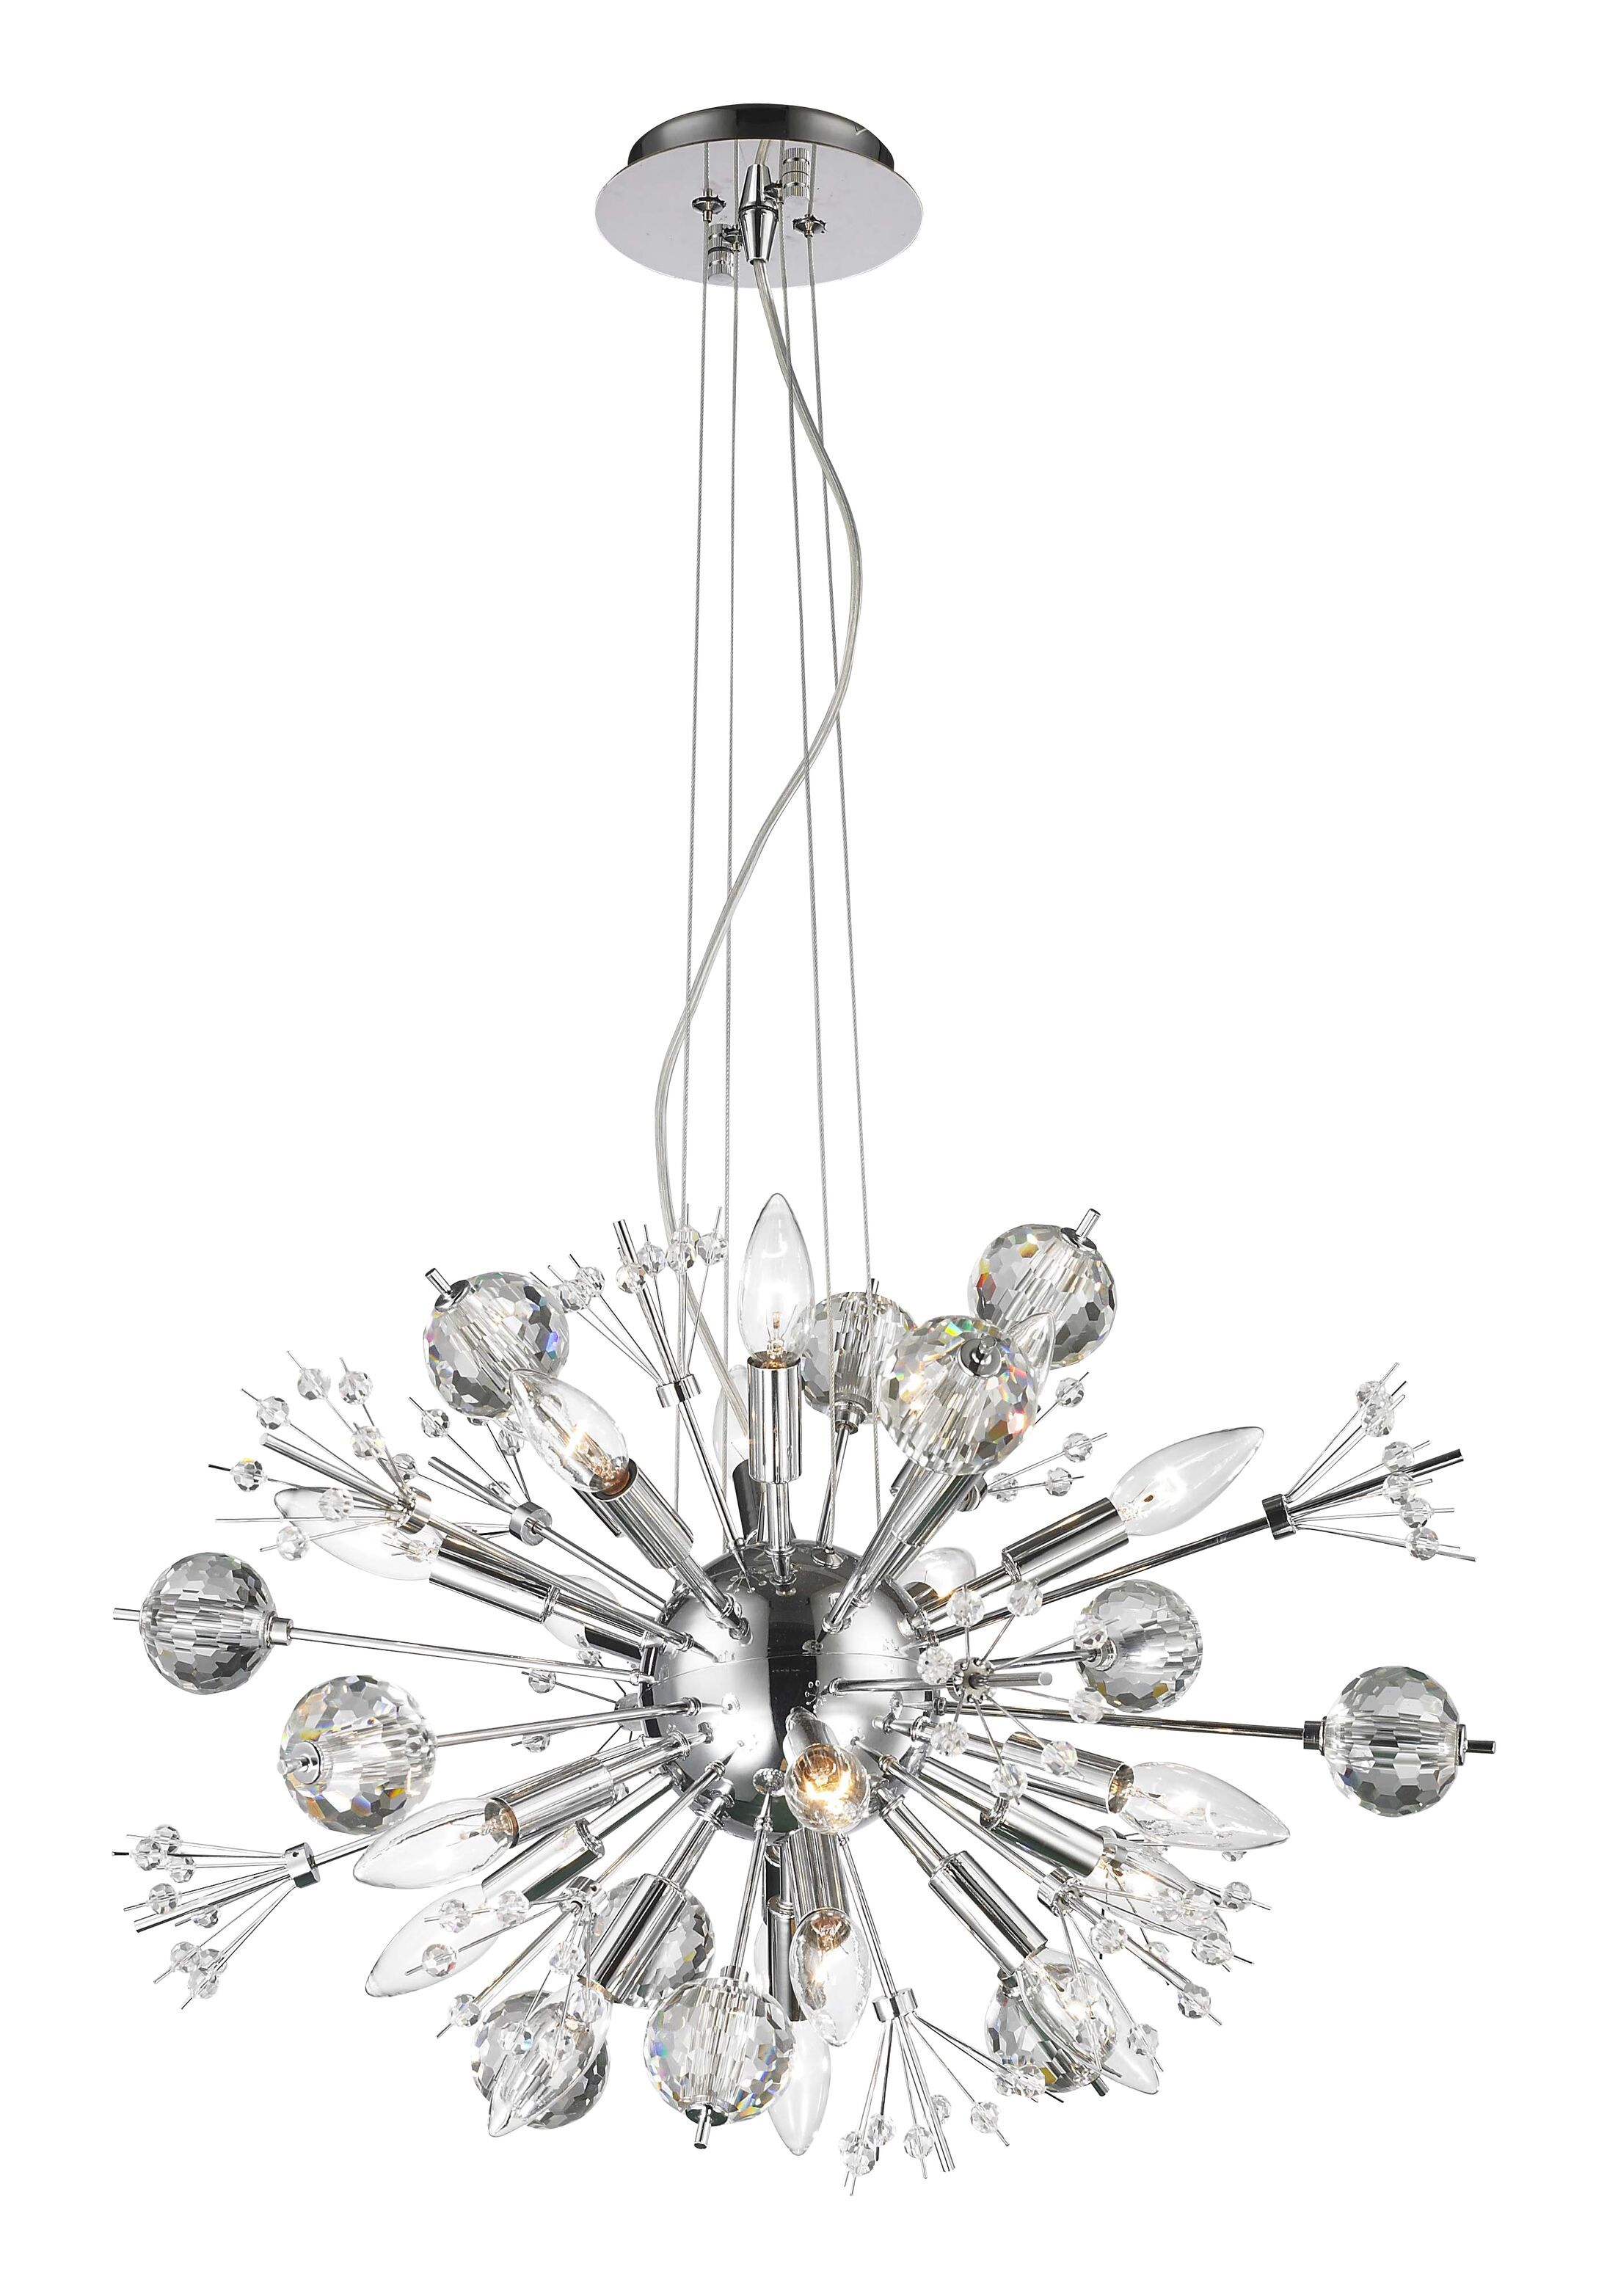 Kinch 20-Light Sputnik Chandelier